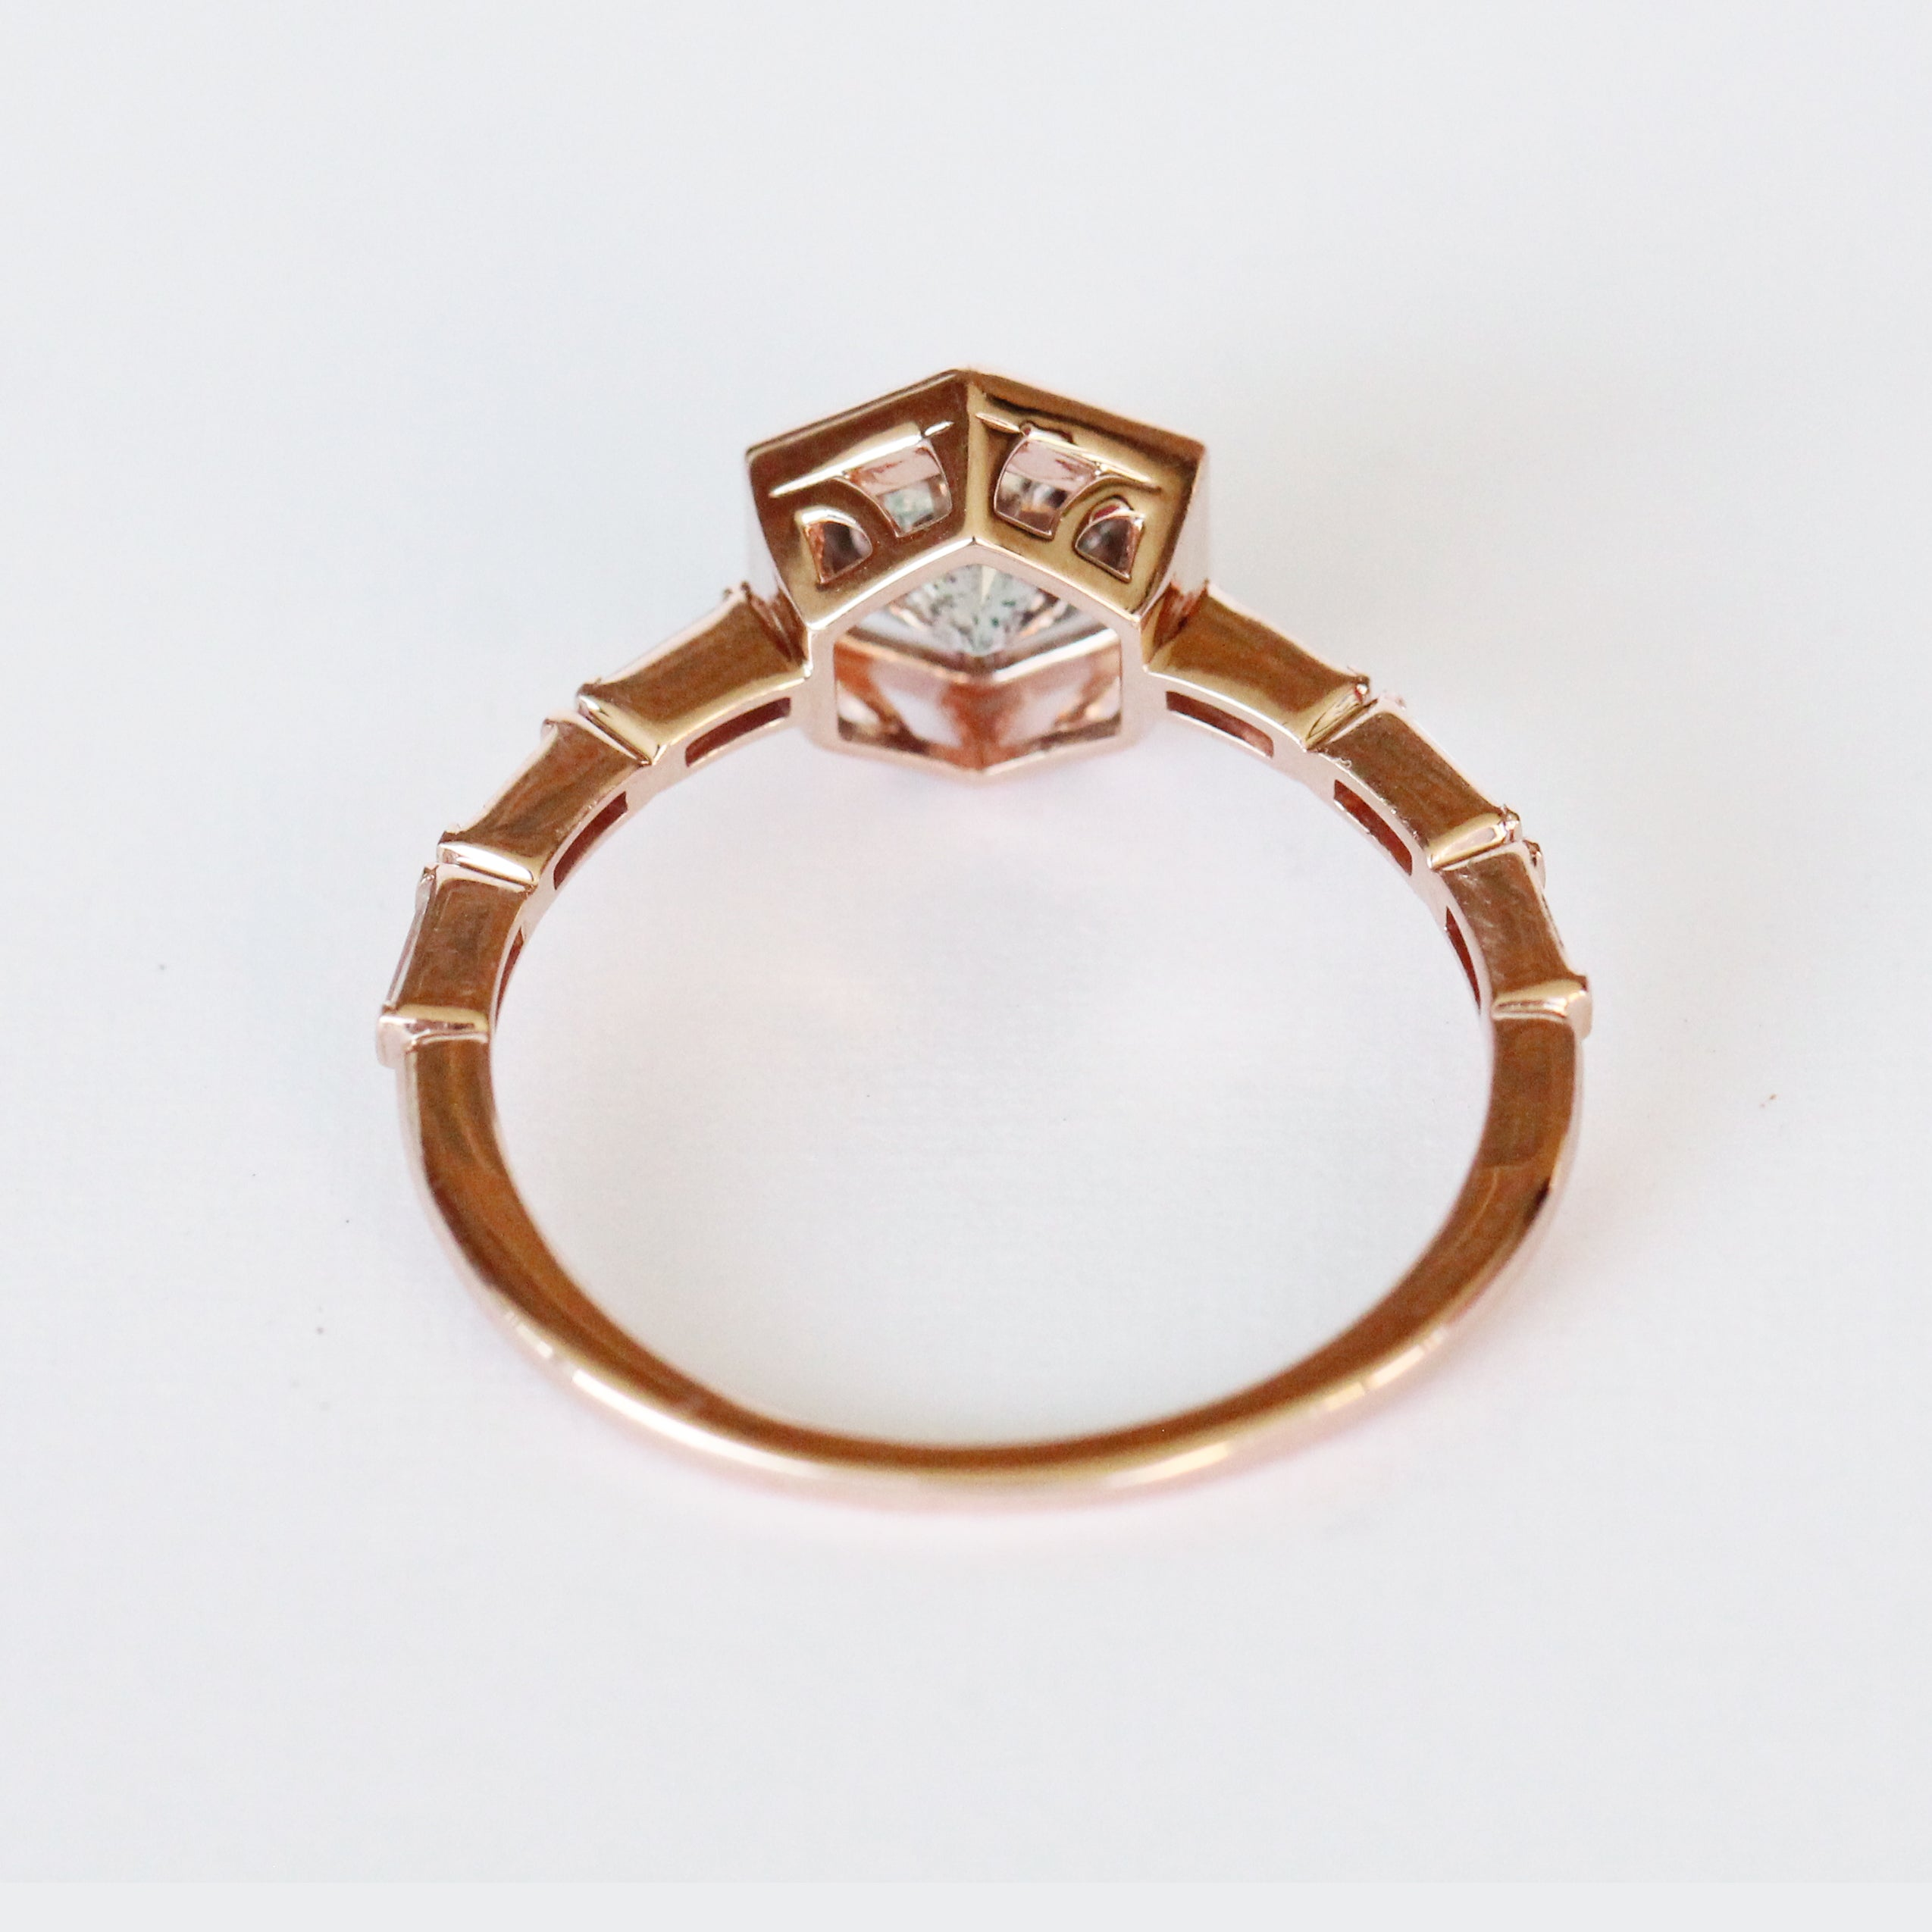 Lennen Ring with a .90 ct Celestial and Diamond Accents in 10k Rose Gold - Ready to Size and Ship